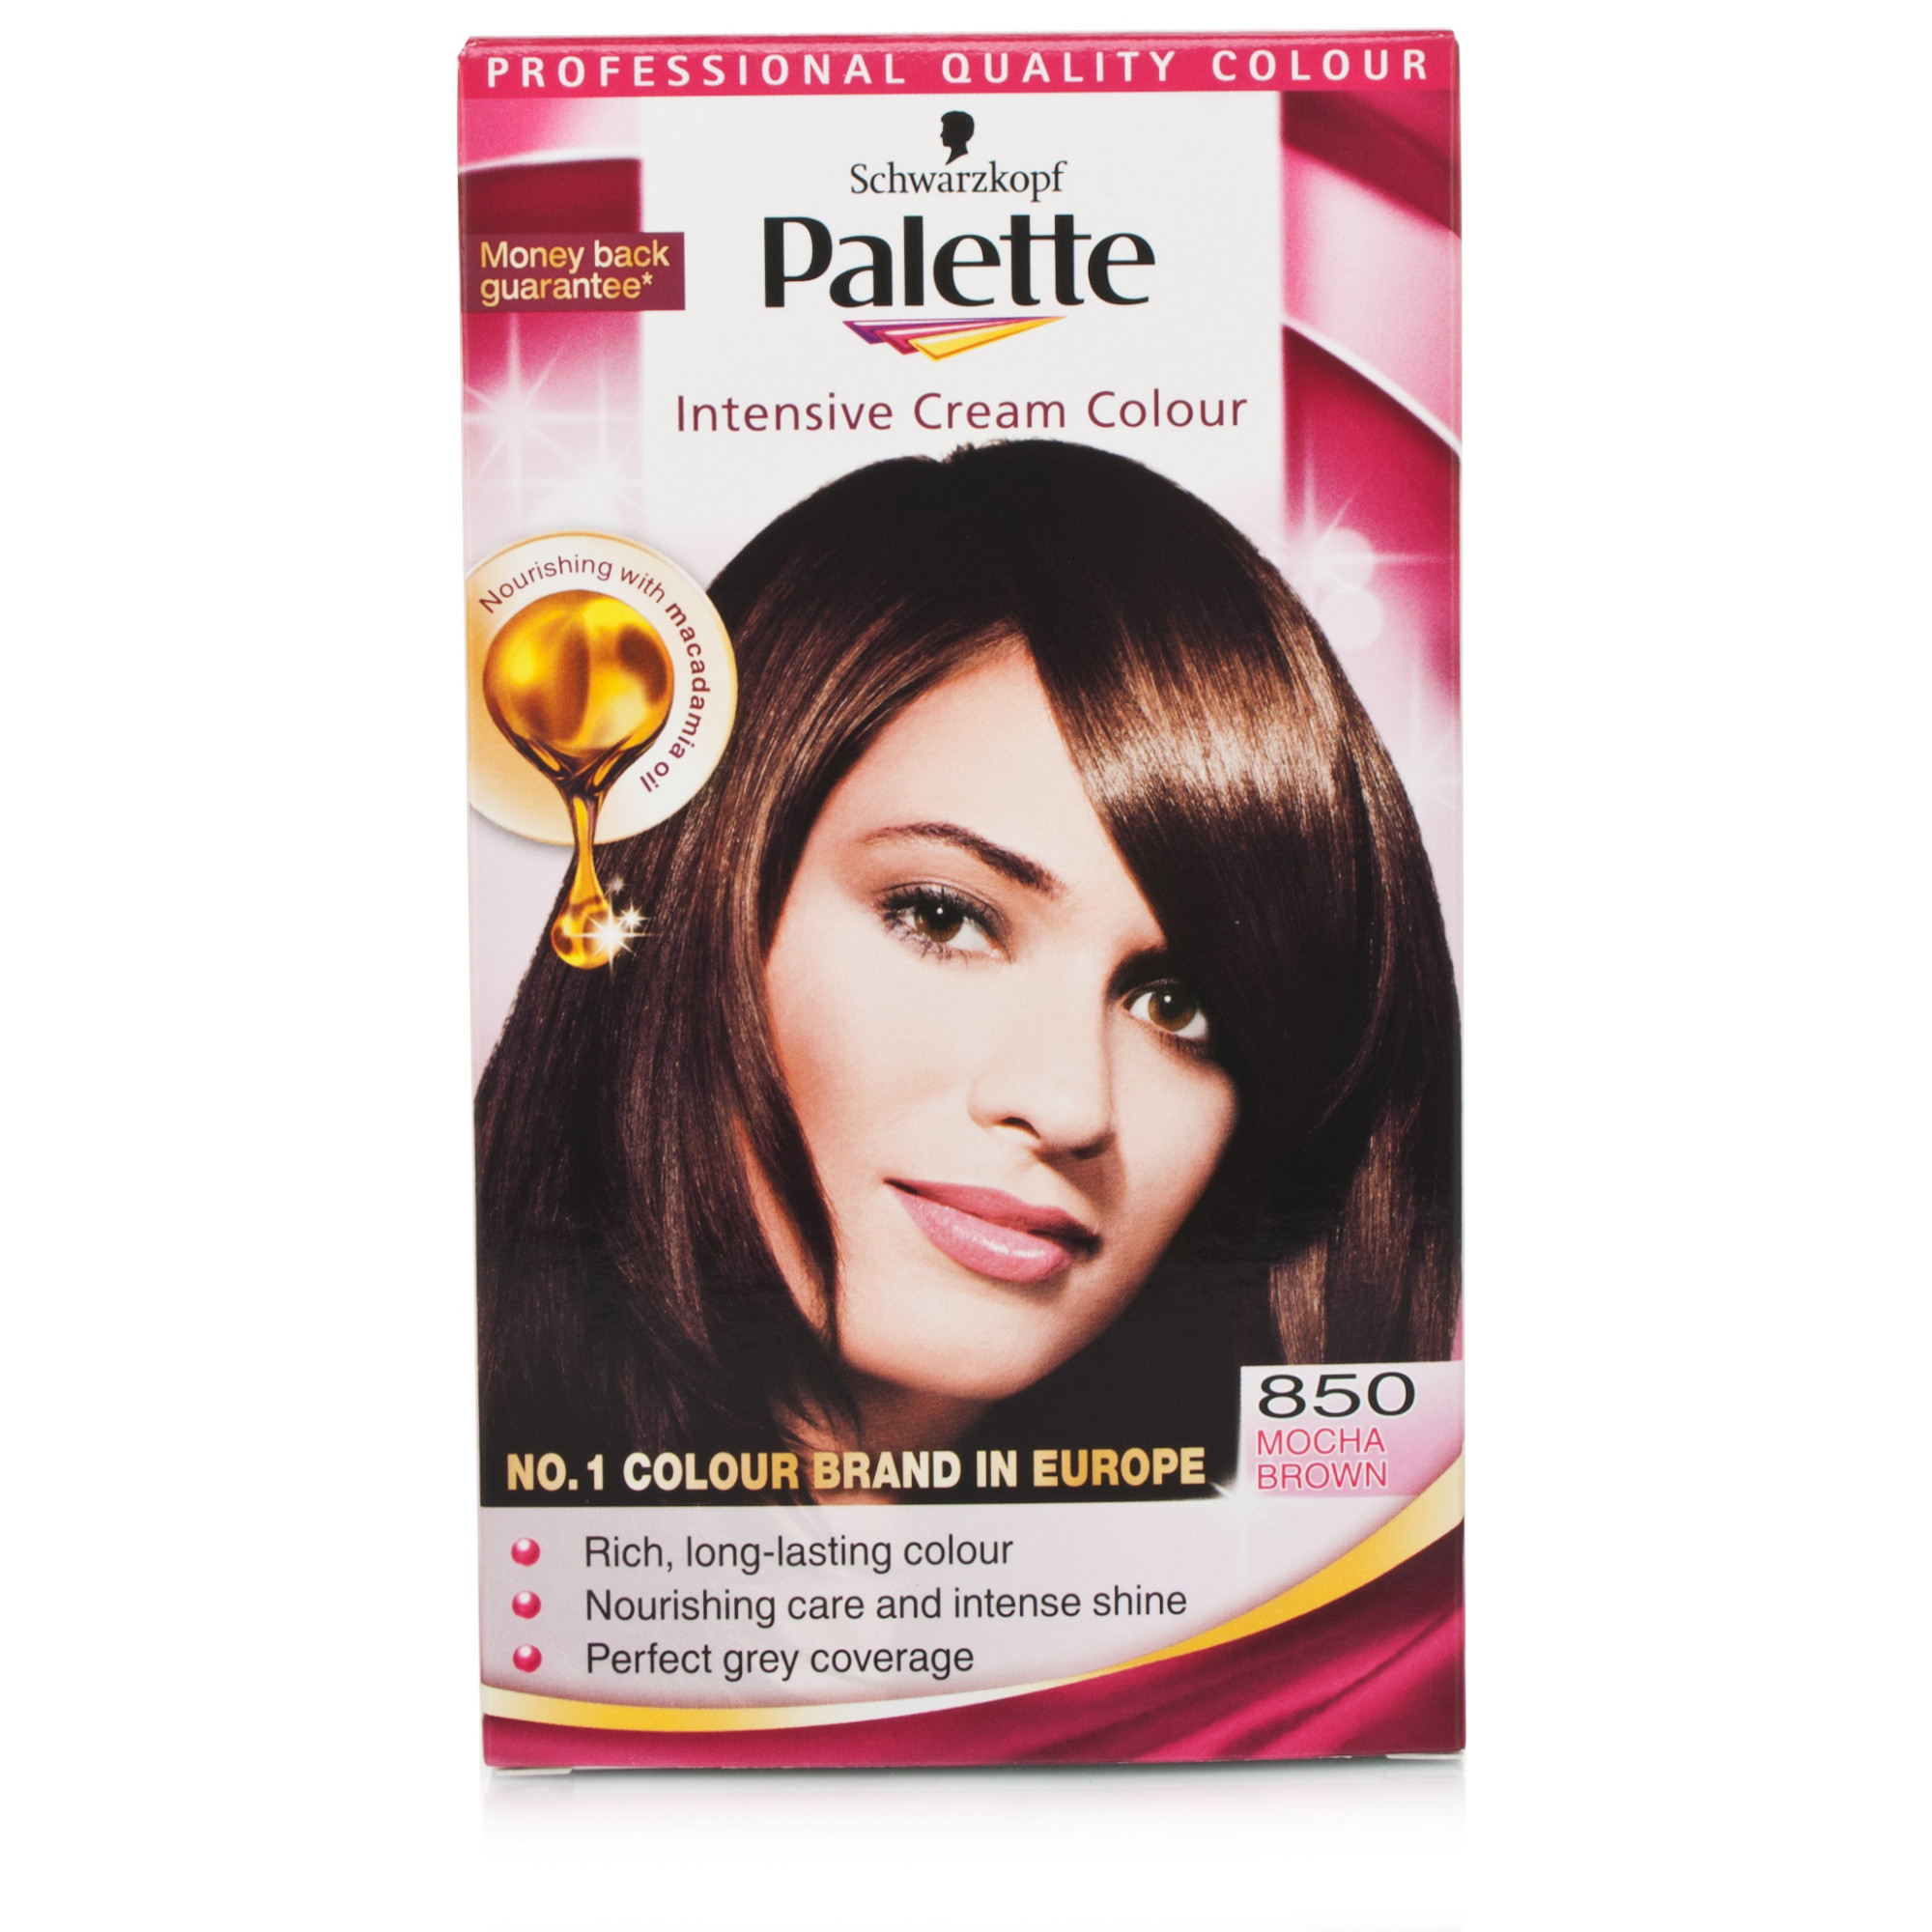 Schwarzkopf Palette Intense Cream Color 850 Mocha Brown  Chemist Direct